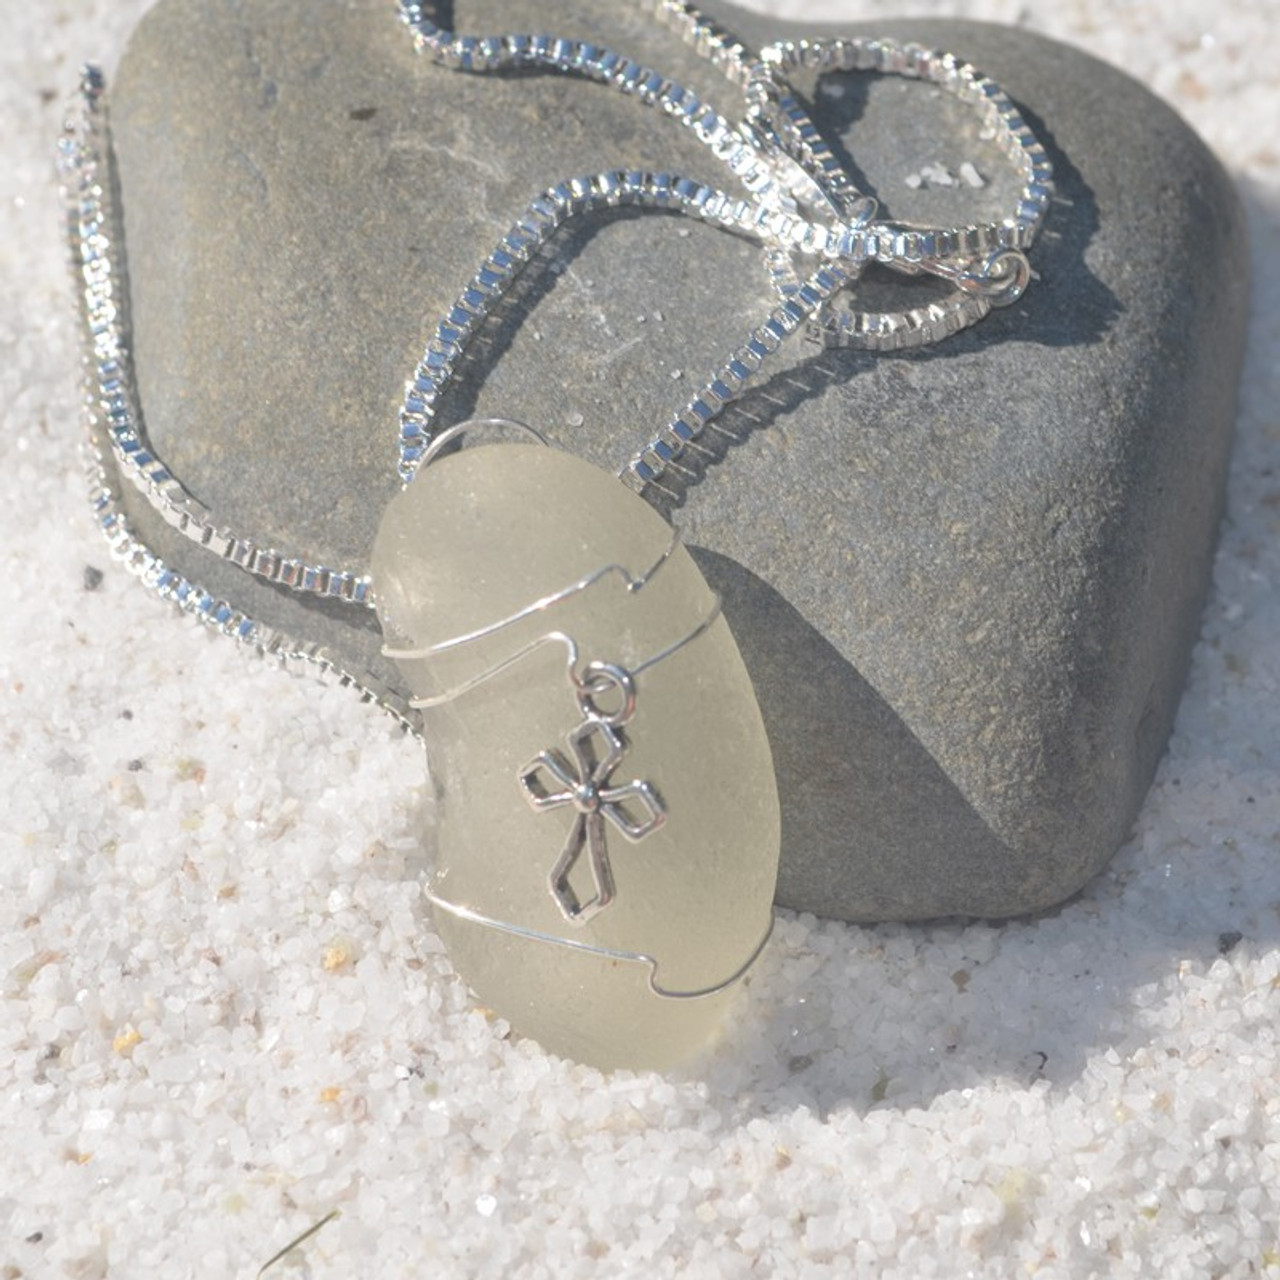 Handmade Genuine Sea Glass Necklace with a Silver Cross Charm - Choose the Color - Frosted, Green, Brown, or Aqua- Made to Order